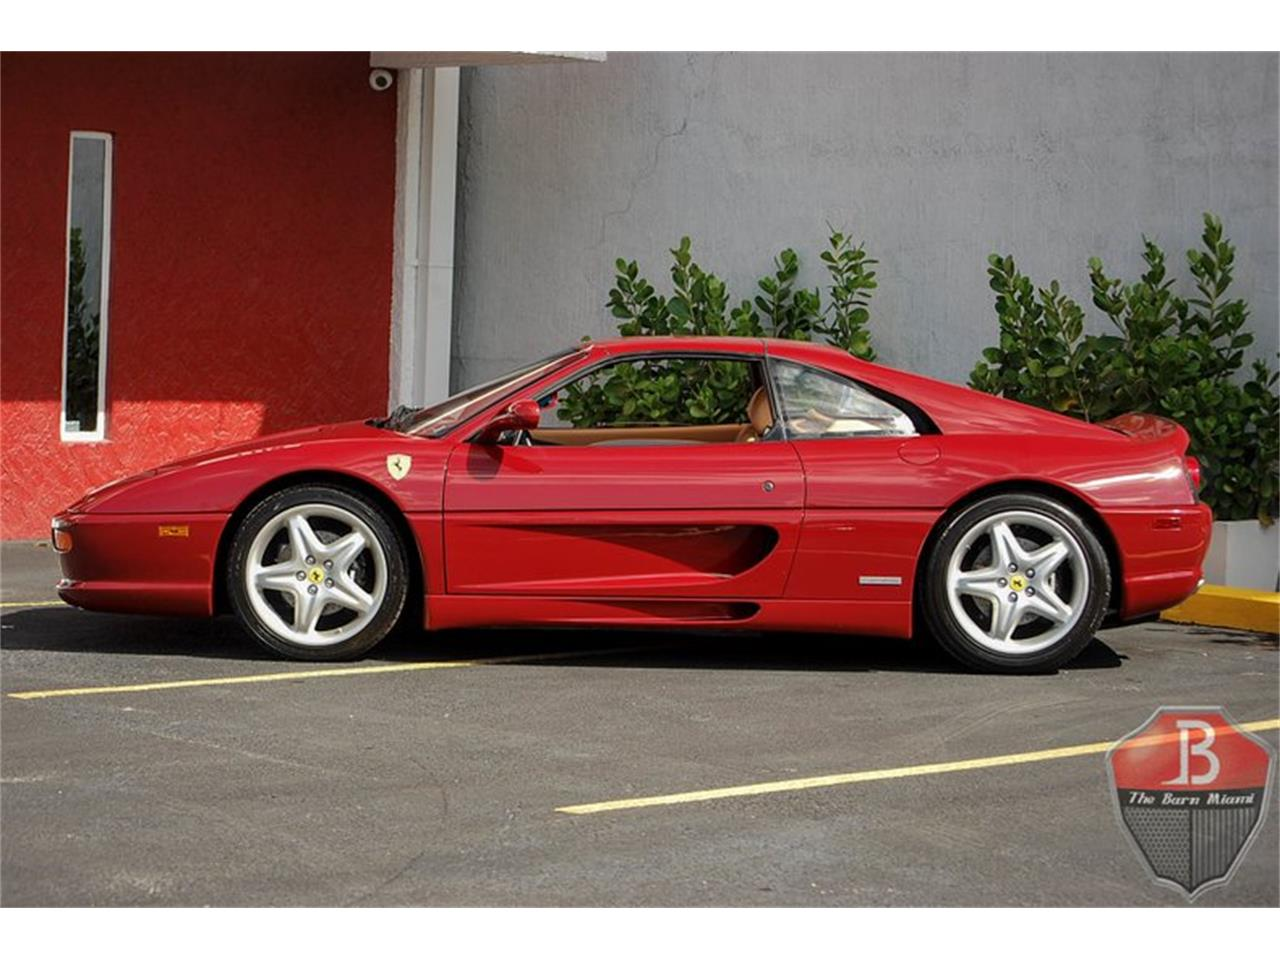 Large Picture of 1999 F355 located in Florida - $89,900.00 Offered by The Barn Miami - N6Y8